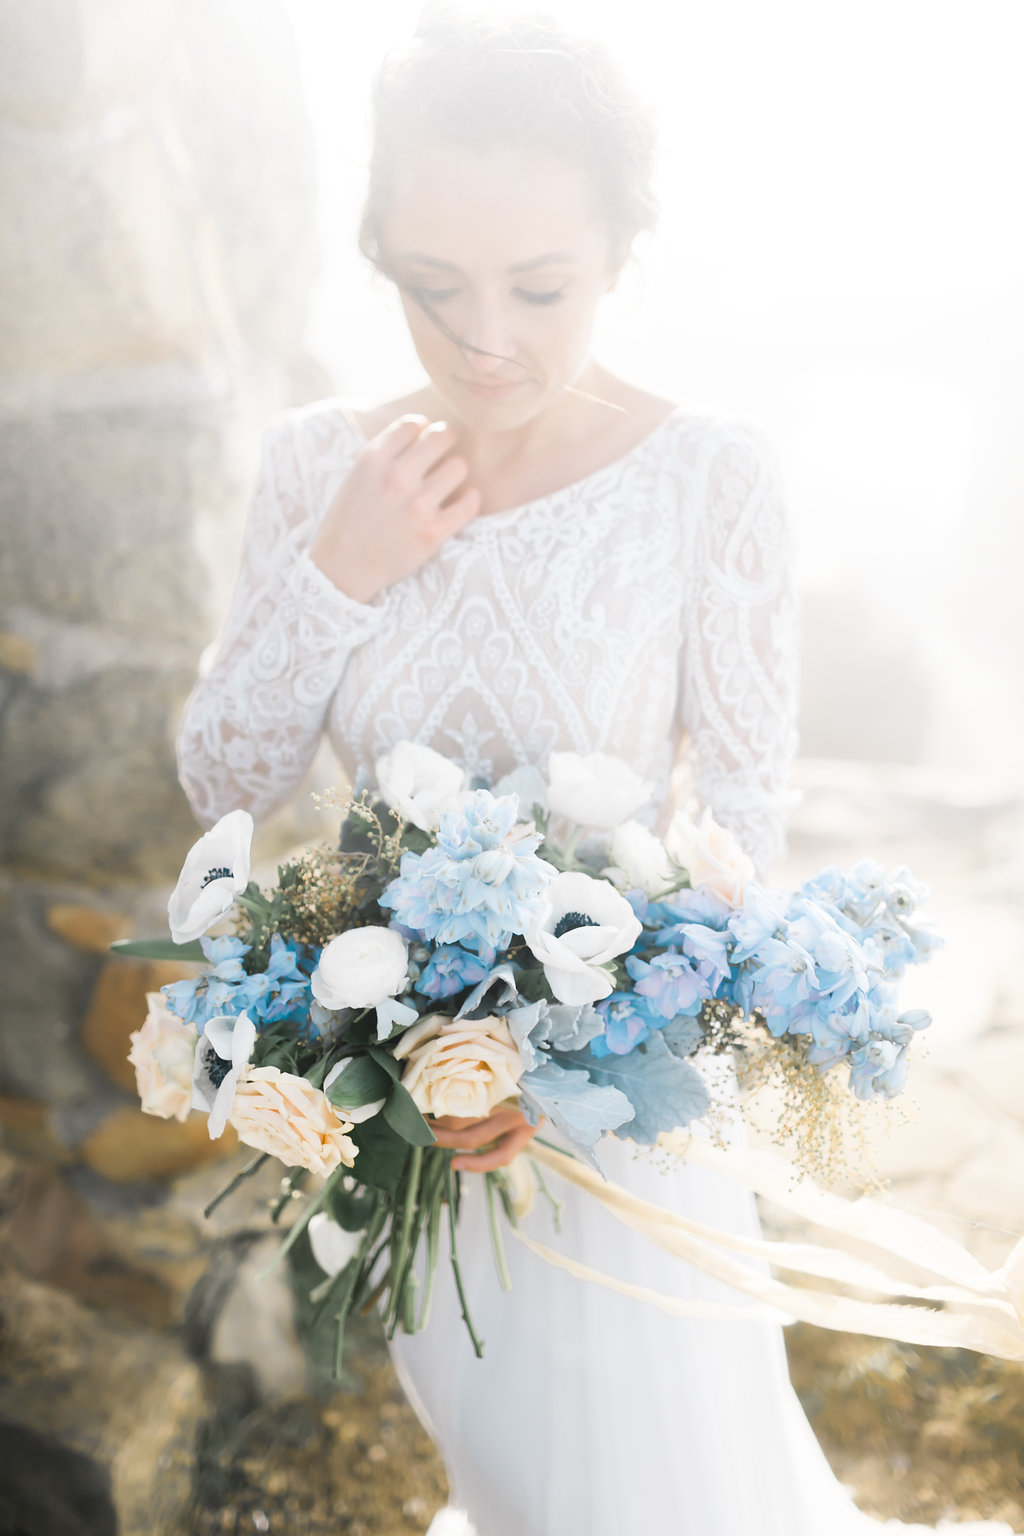 blue and white bouquets - photo by Natalie Schutt http://ruffledblog.com/misty-dream-vow-renewal-at-knapps-castle